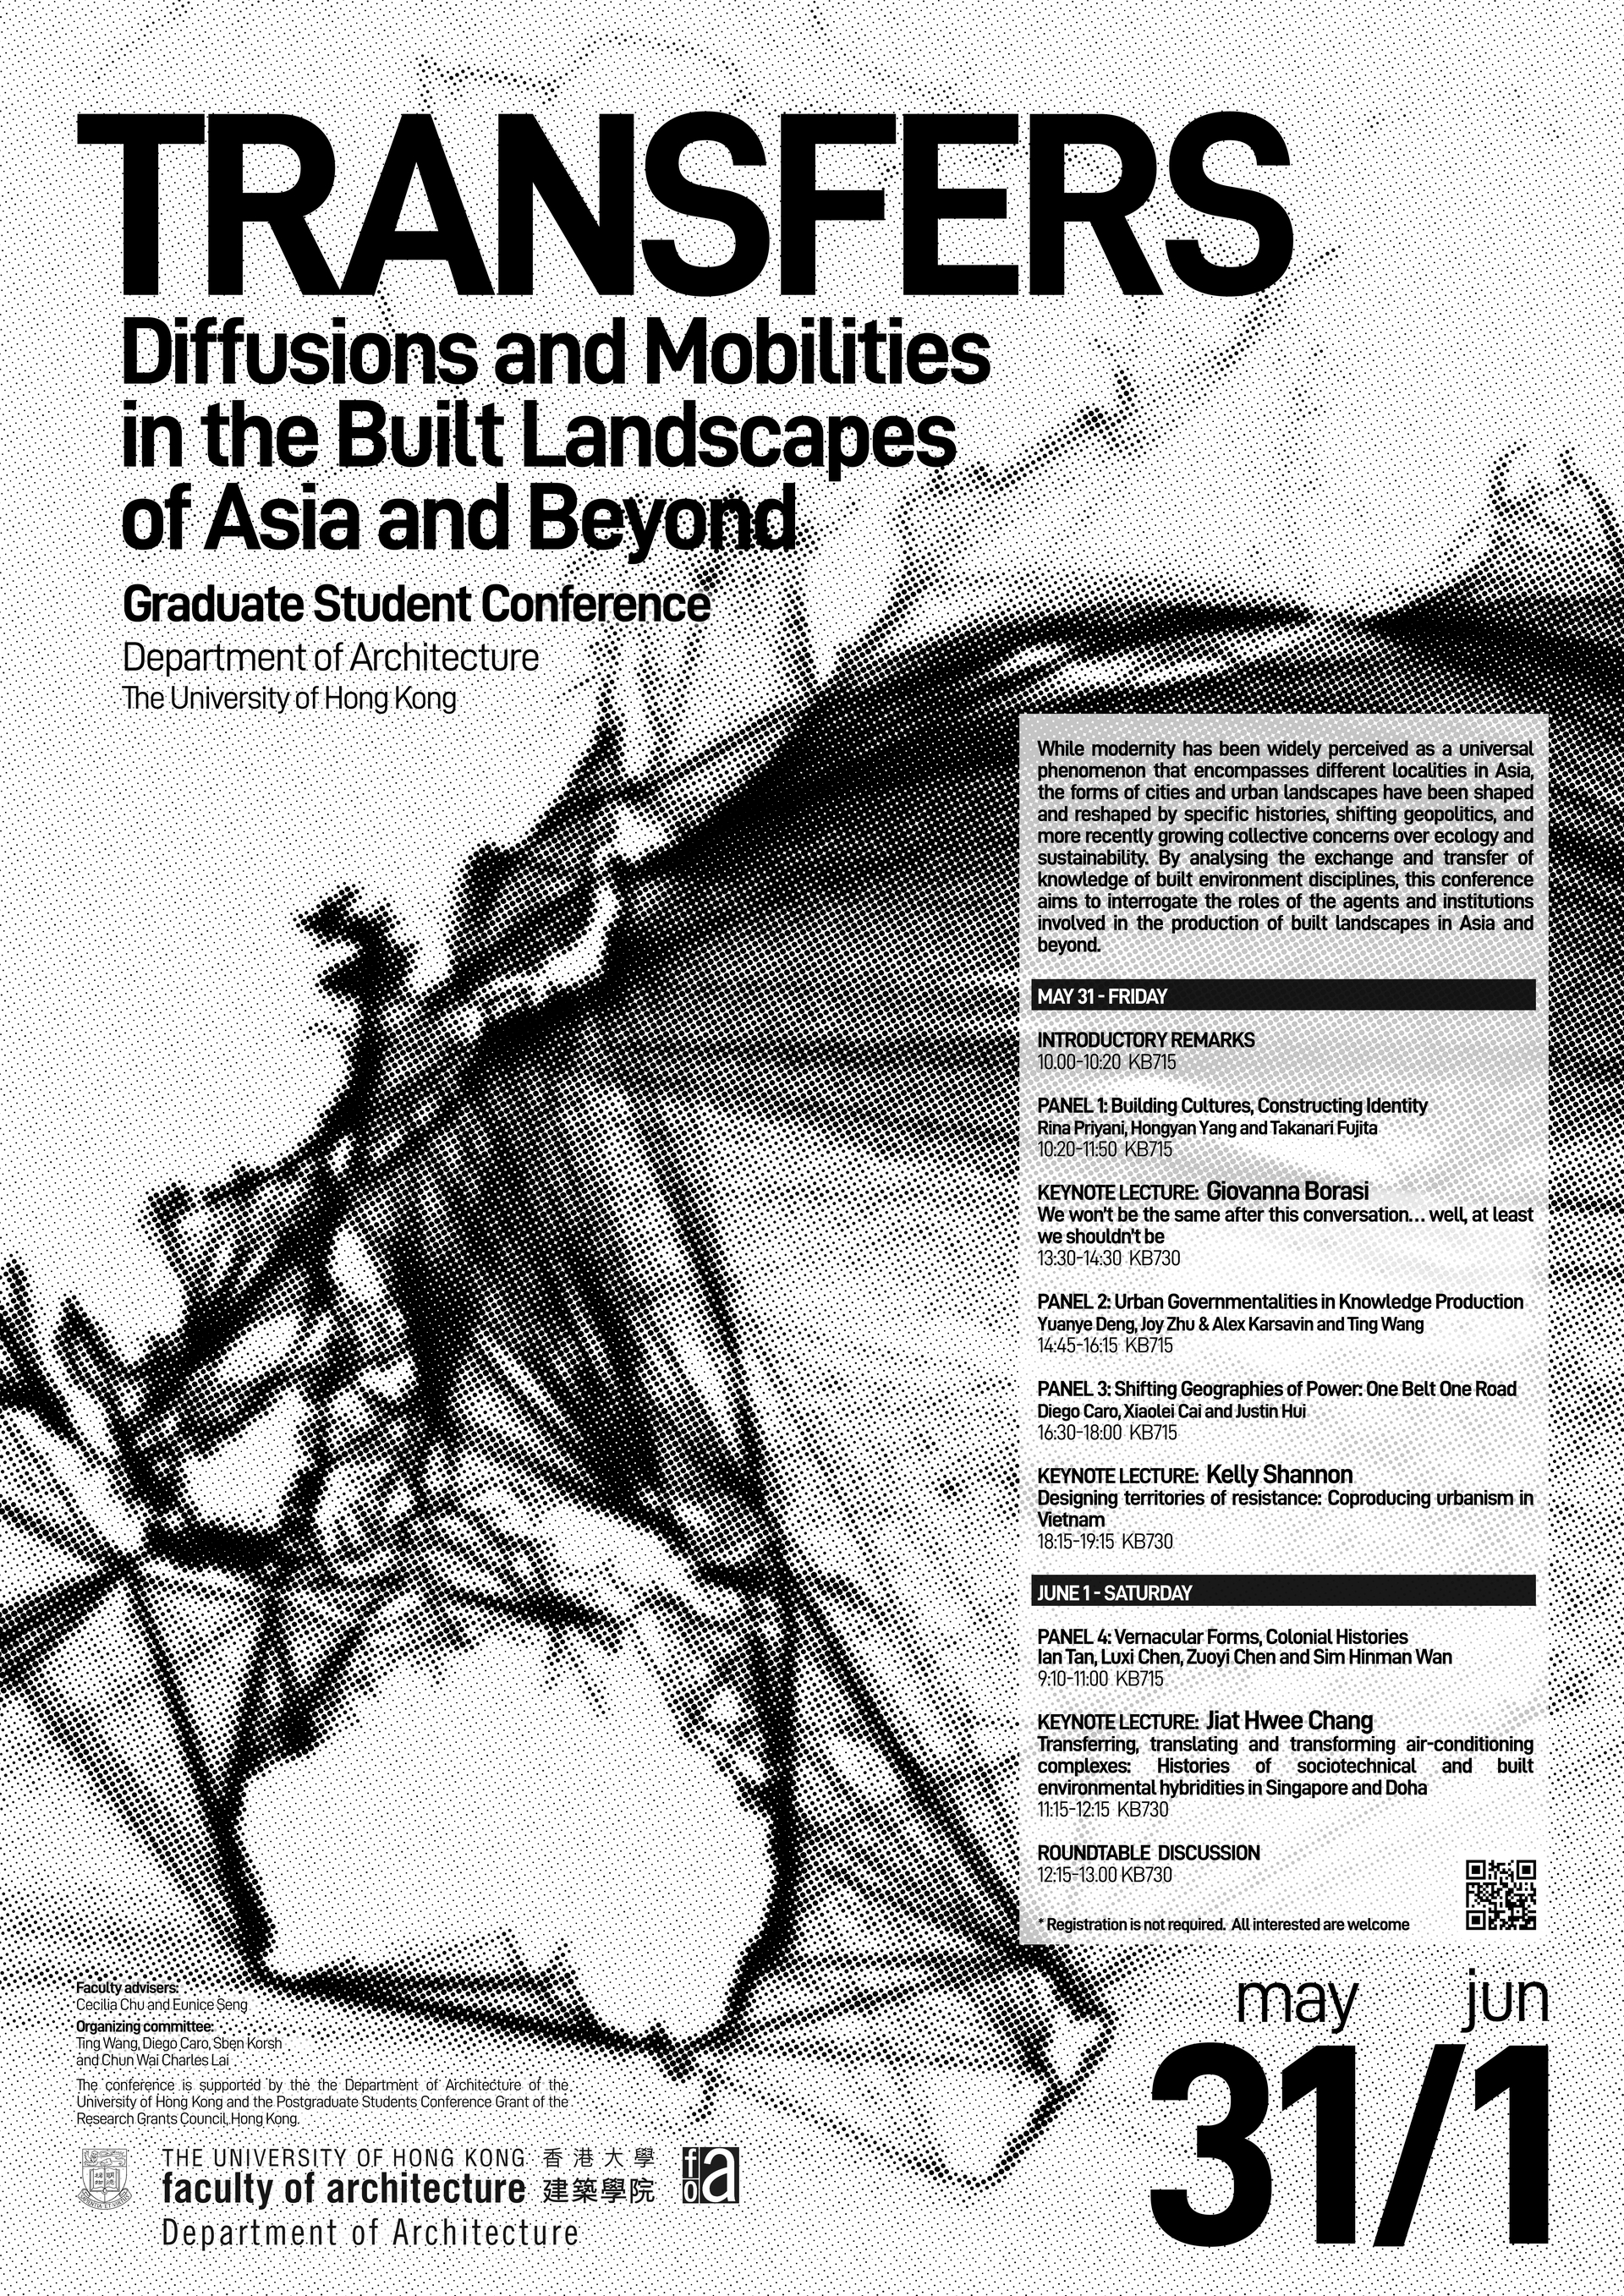 TRANSFER: Diffusions and Mobilities in the Built Landscapes of Asia and beyond